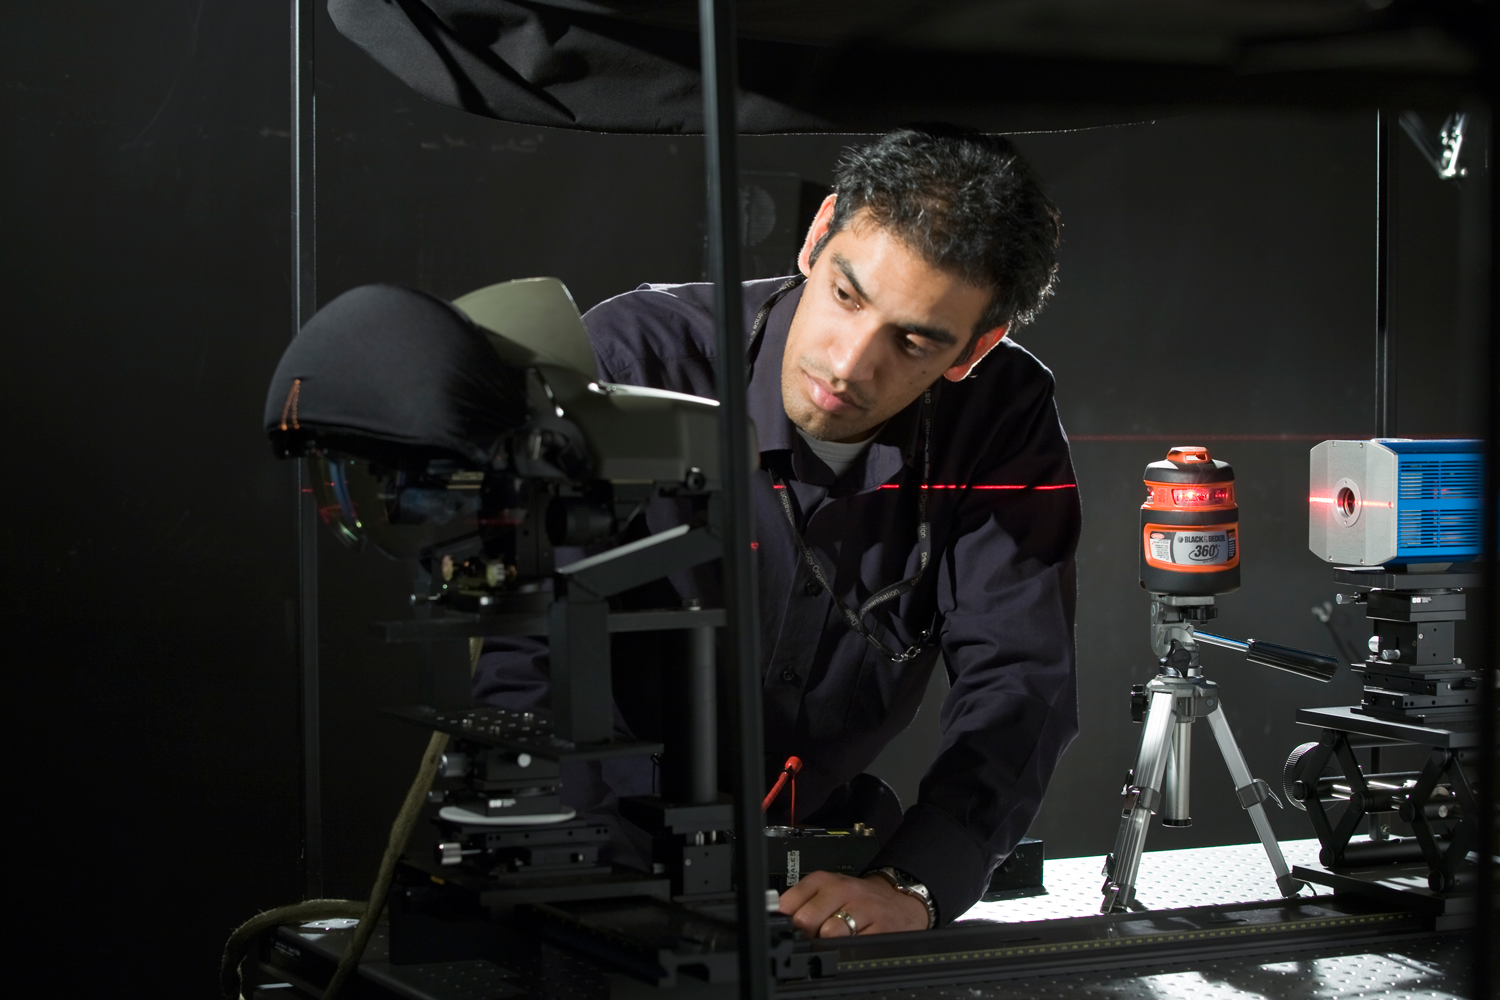 Checking the optical alignment of the instrumentation to measure the optical performance of DSTO's Night Vision Imaging System.